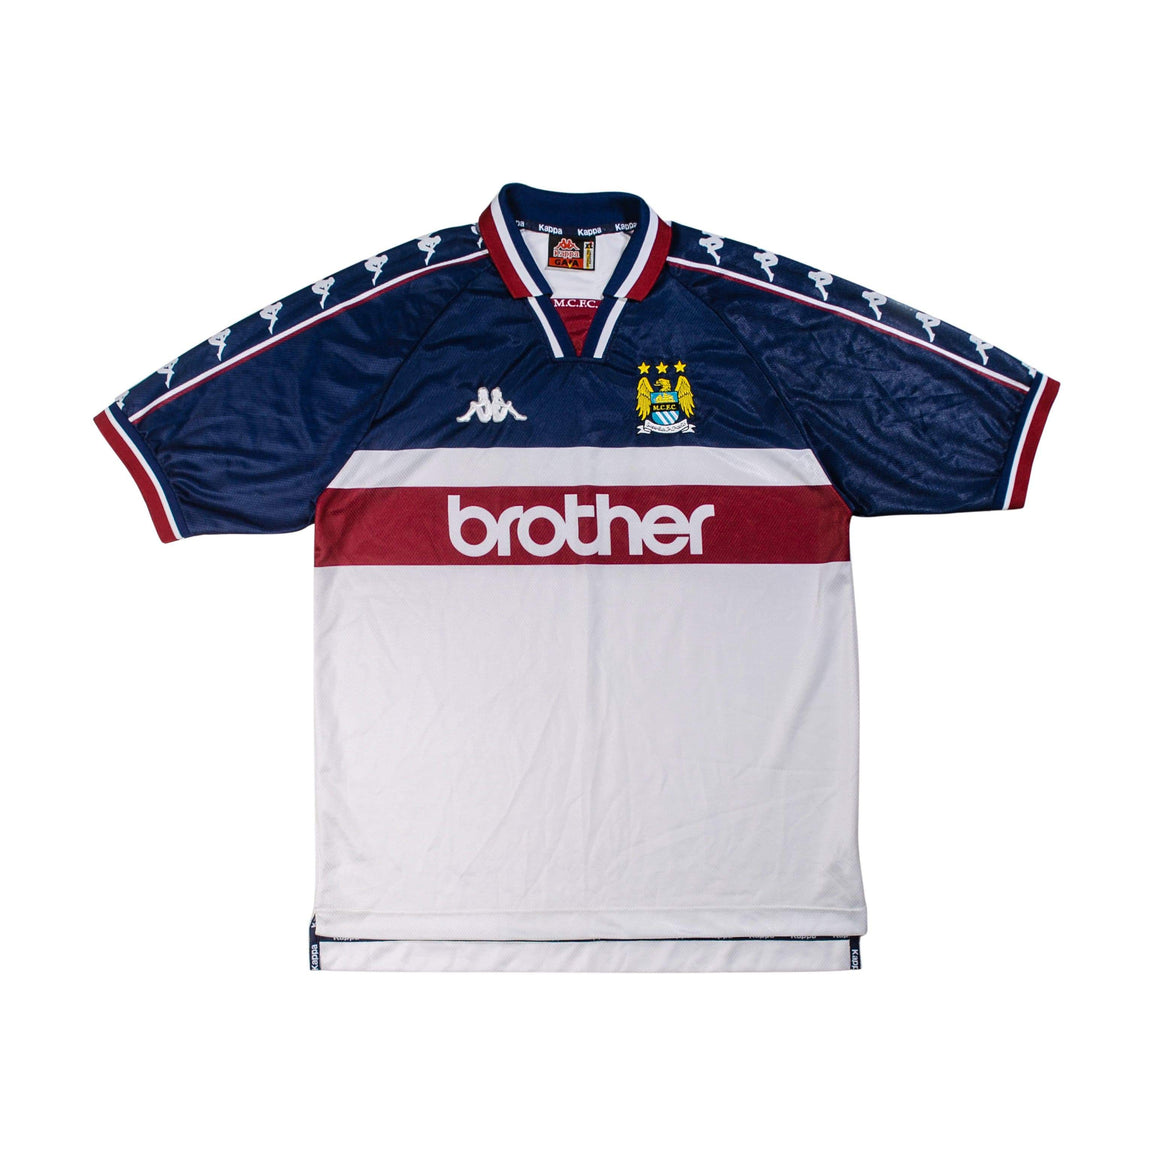 1997-1998 Manchester City away shirt XL (Excellent) - Football Shirt Collective